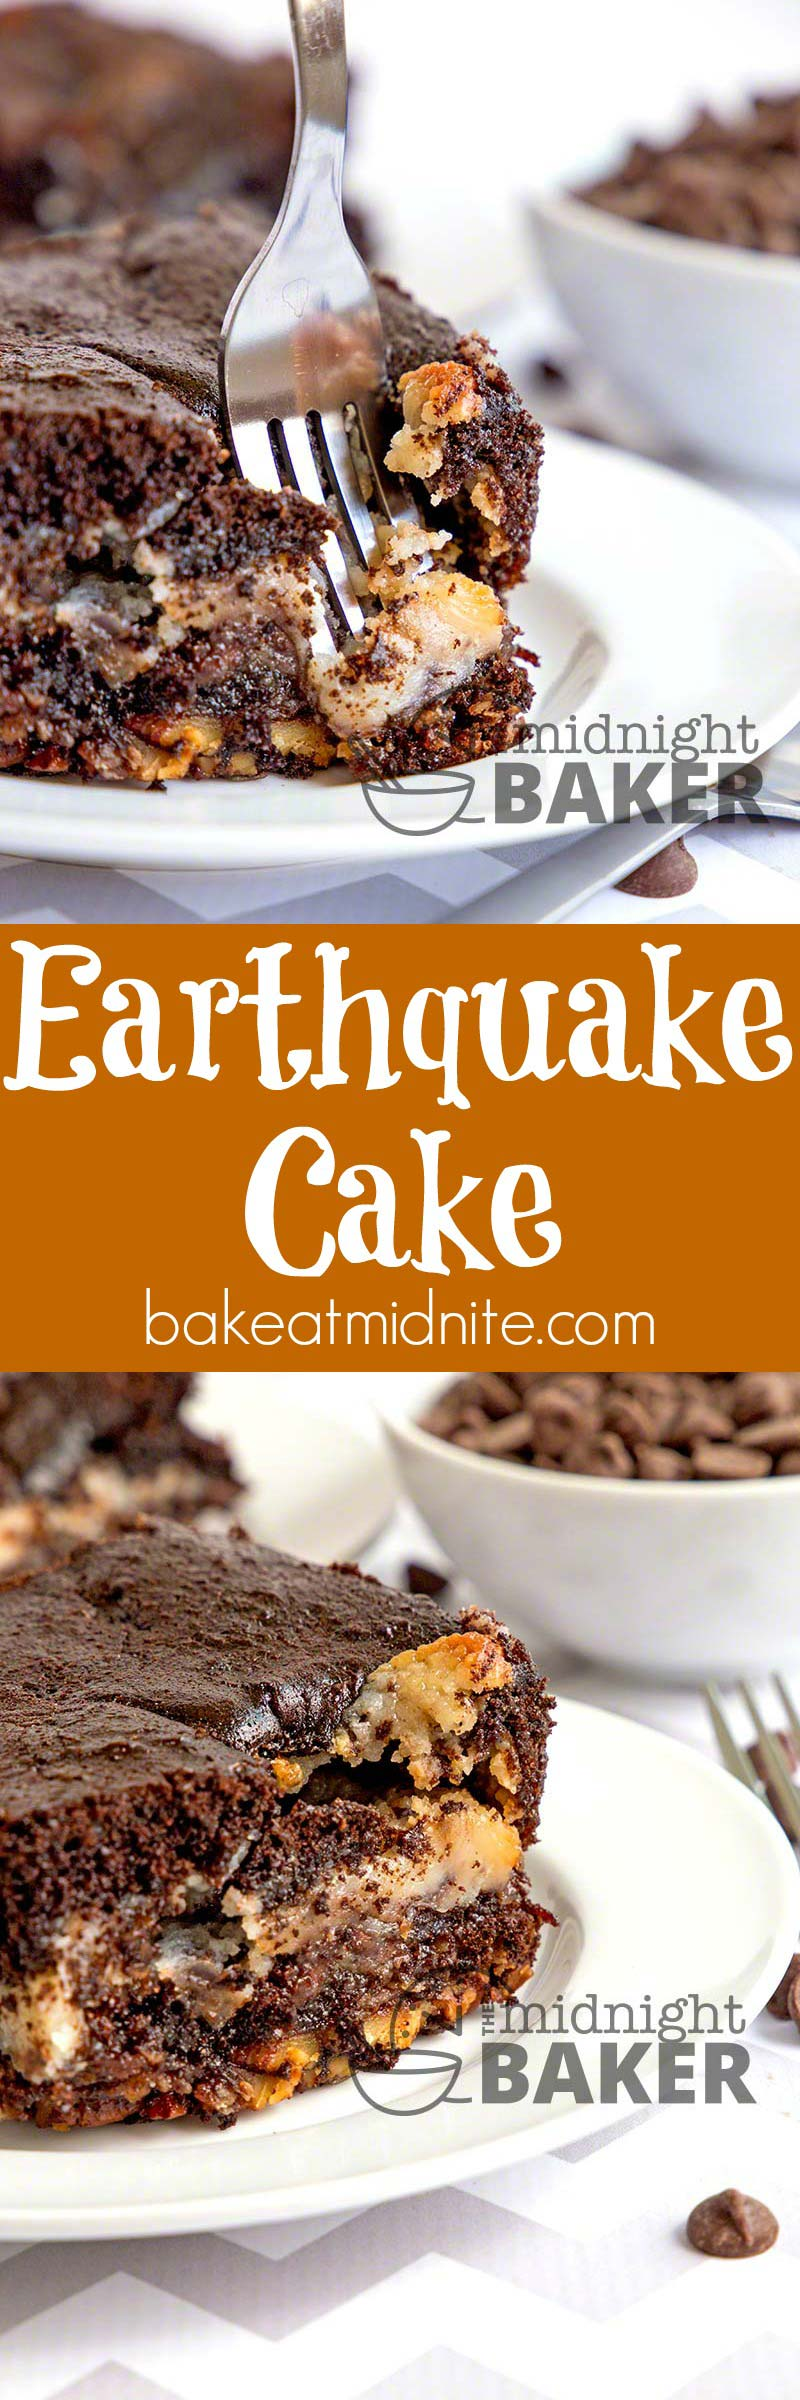 Earthquake cake is a flavor explosion in your mouth--gooey, creamy and nutty! In a word, fabulous!